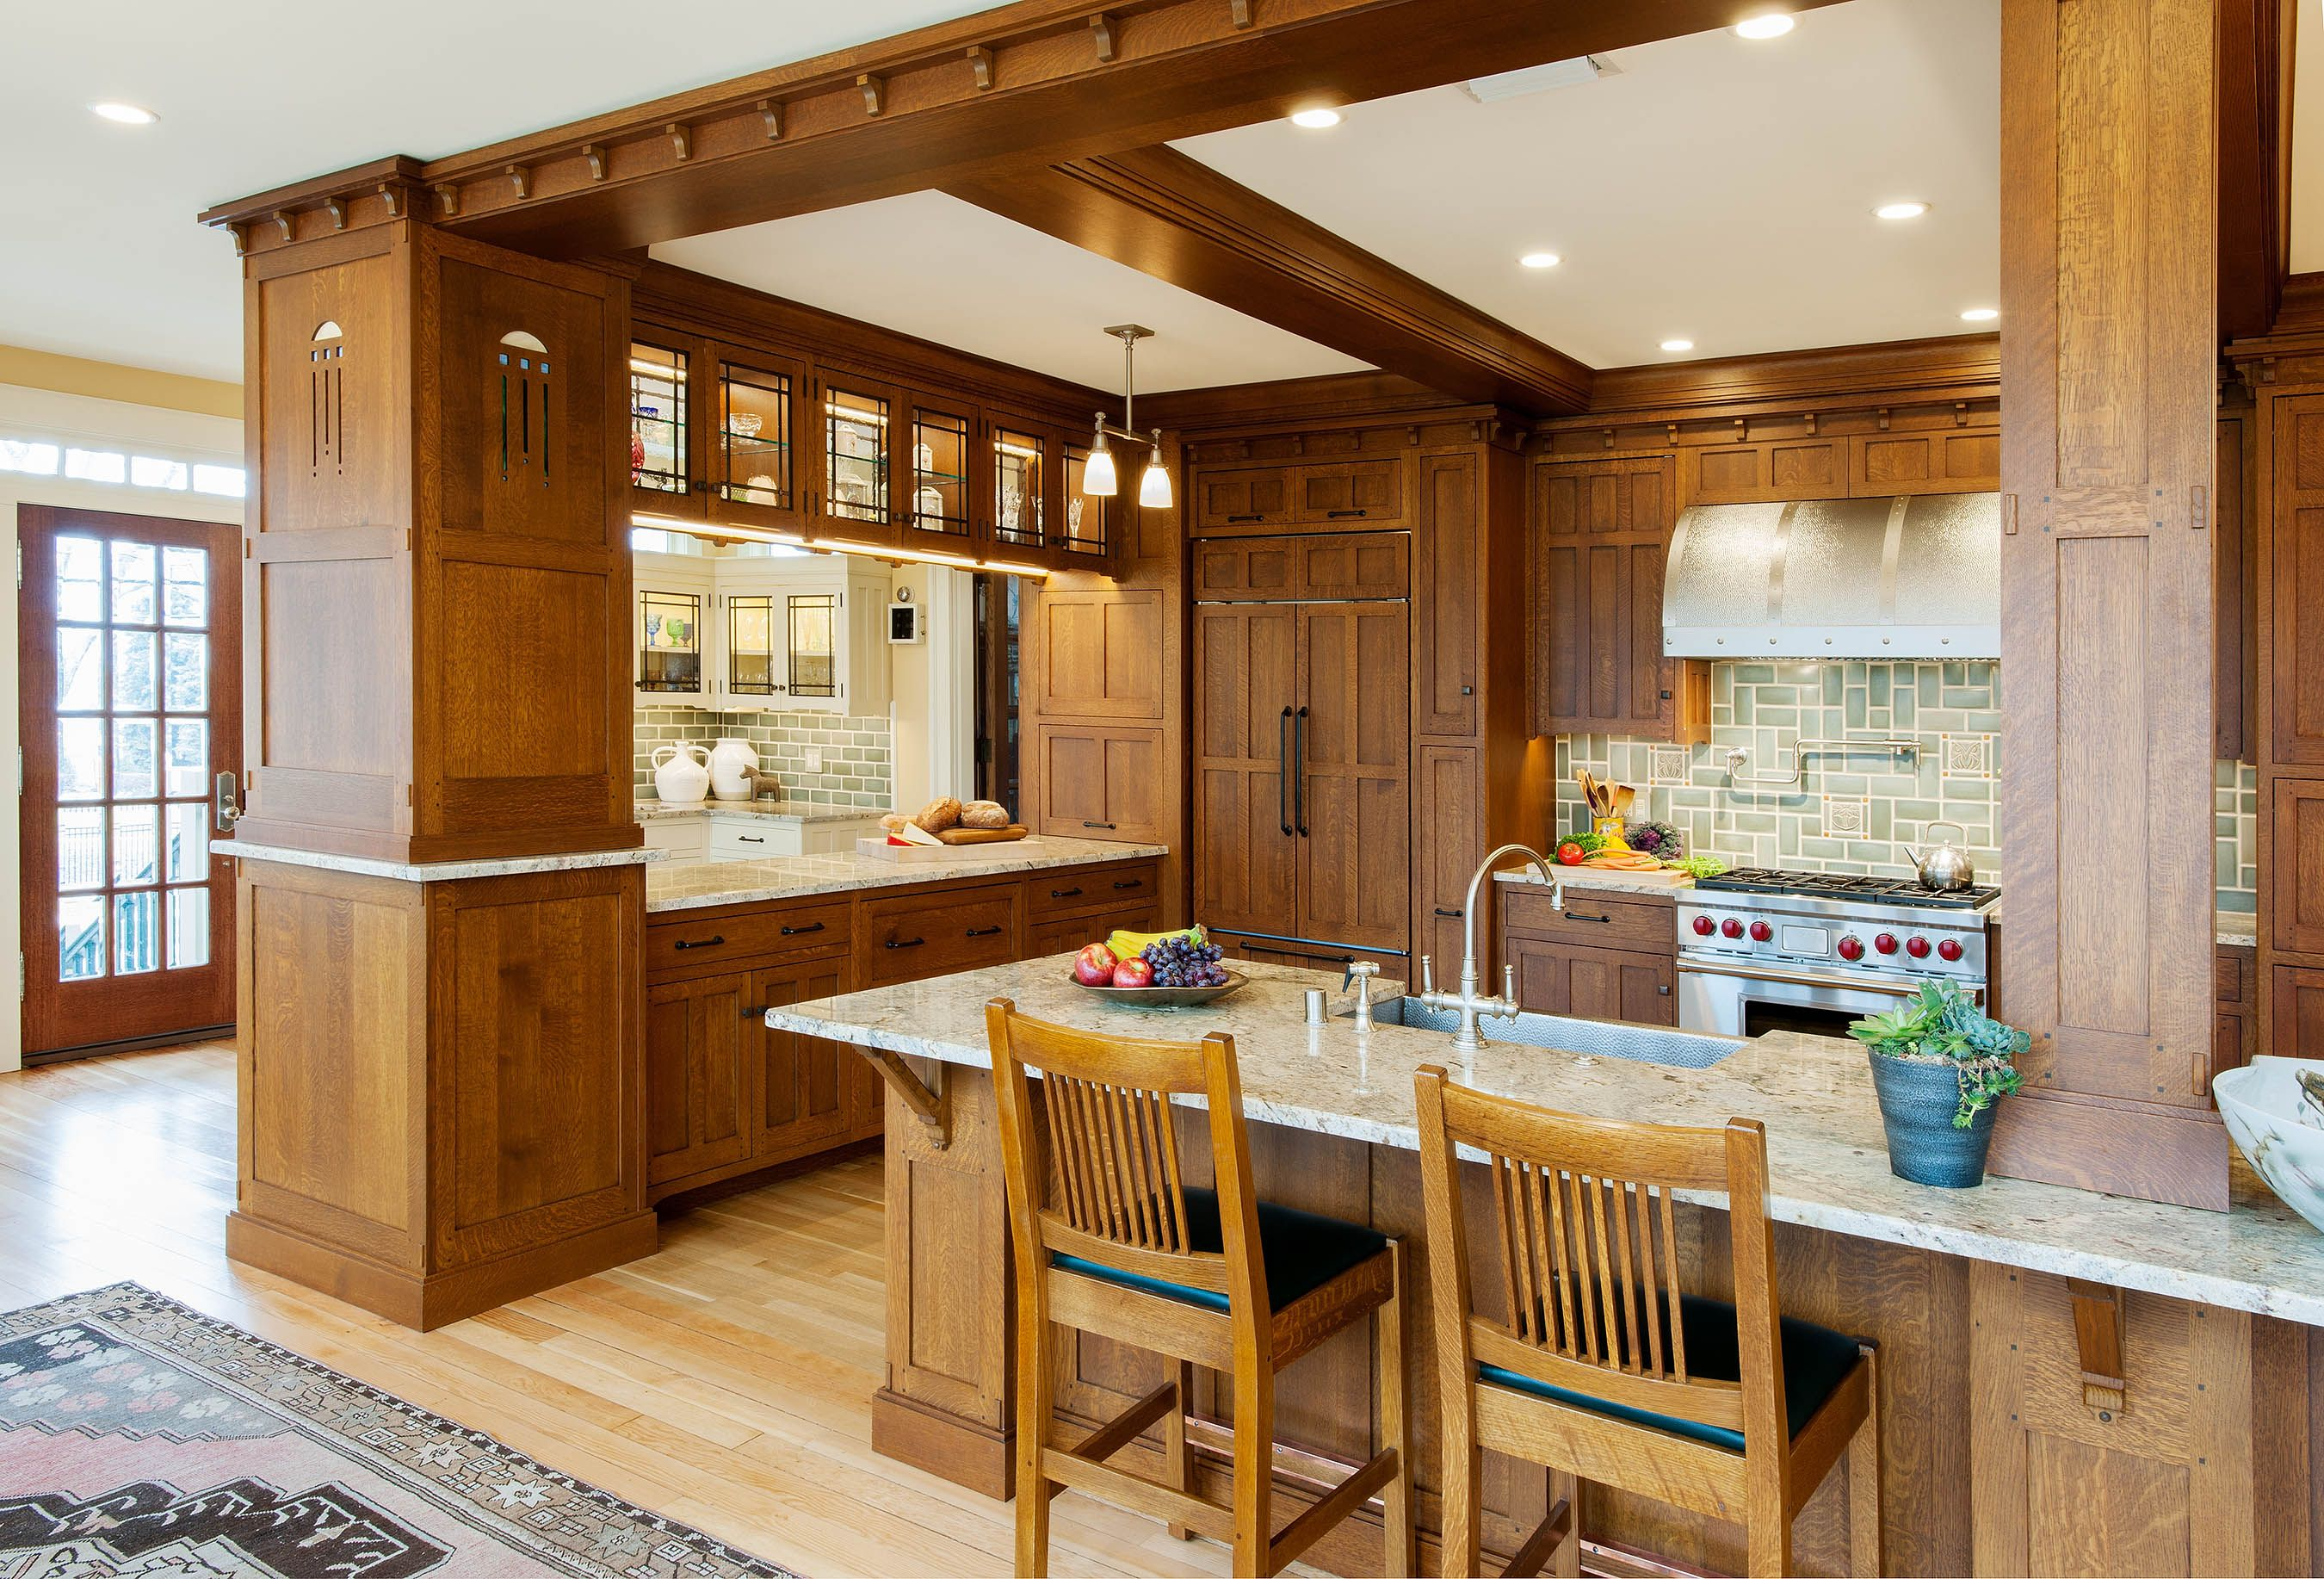 Pin By Jane Helstrom On Arts Crafts Mission Style Kitchens Mission Style Kitchen Cabinets Kitchen Cabinet Styles